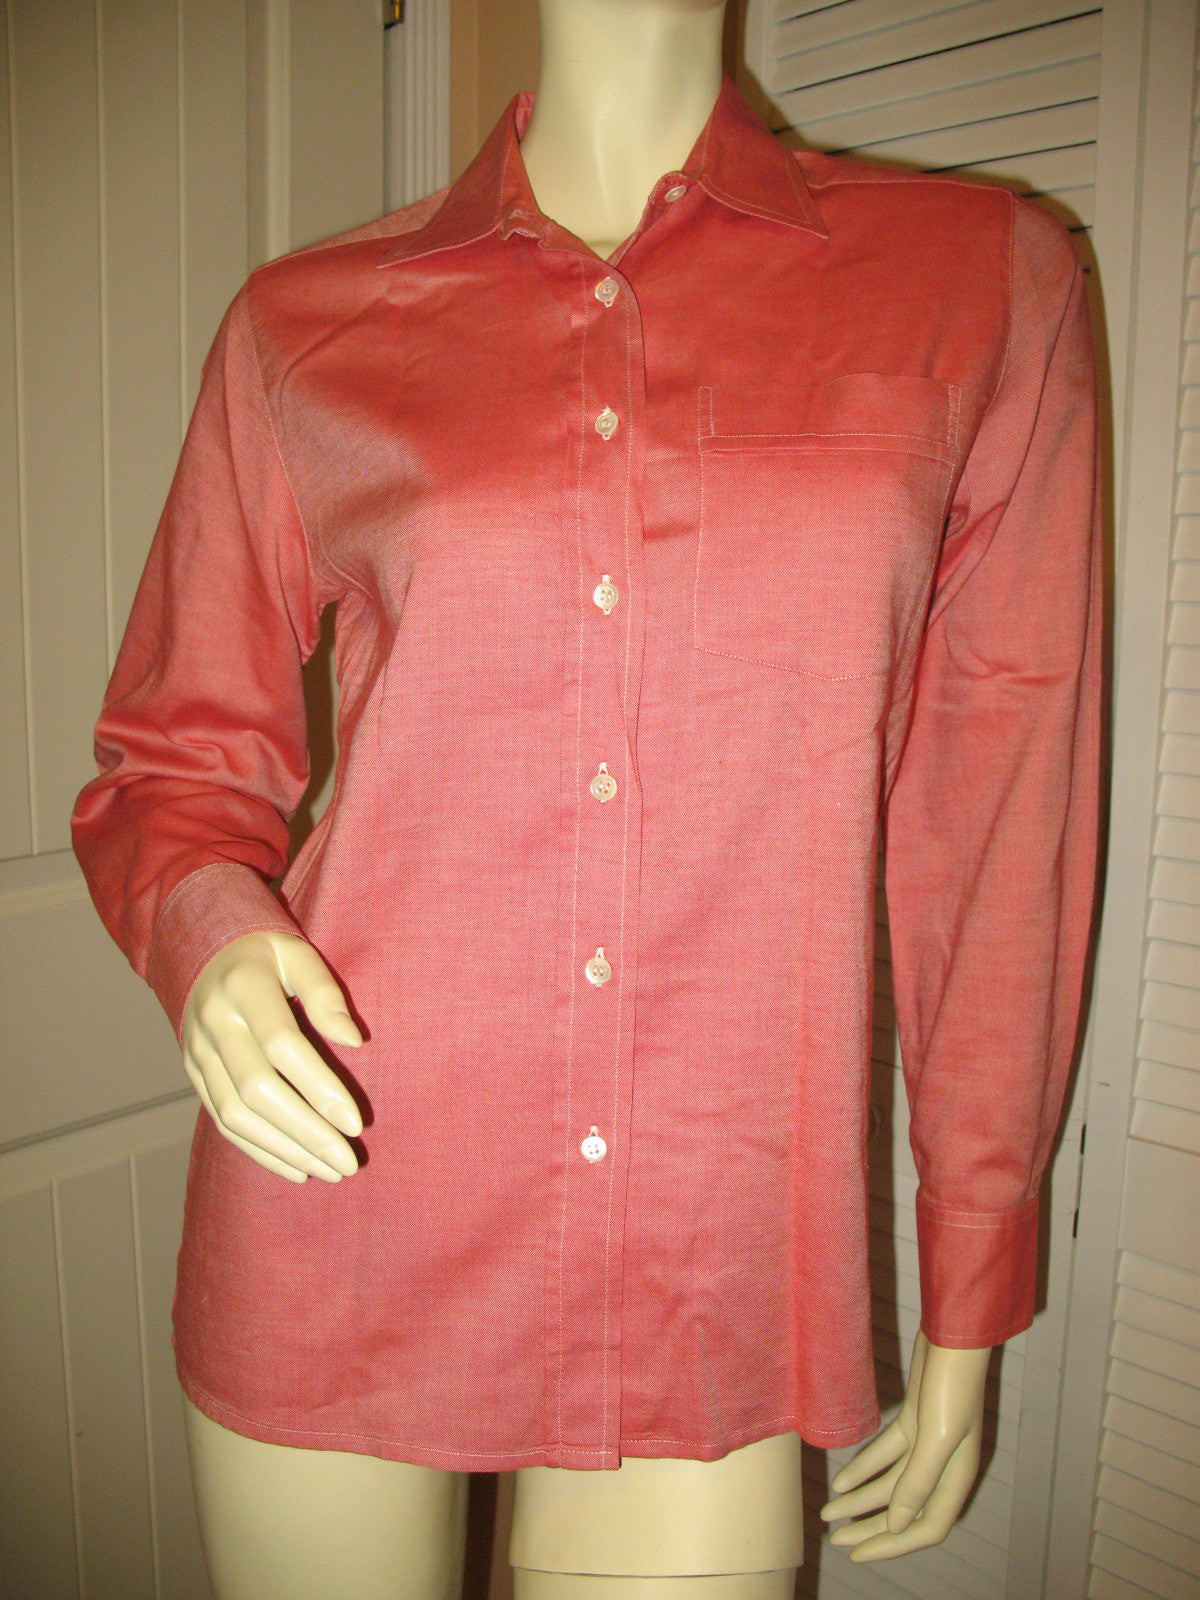 011c7f8a Walter Voulaz Made In Italy New Womens Long Sleeve Button Down Shirt Polo  Top Red Orange Medium Business Attire